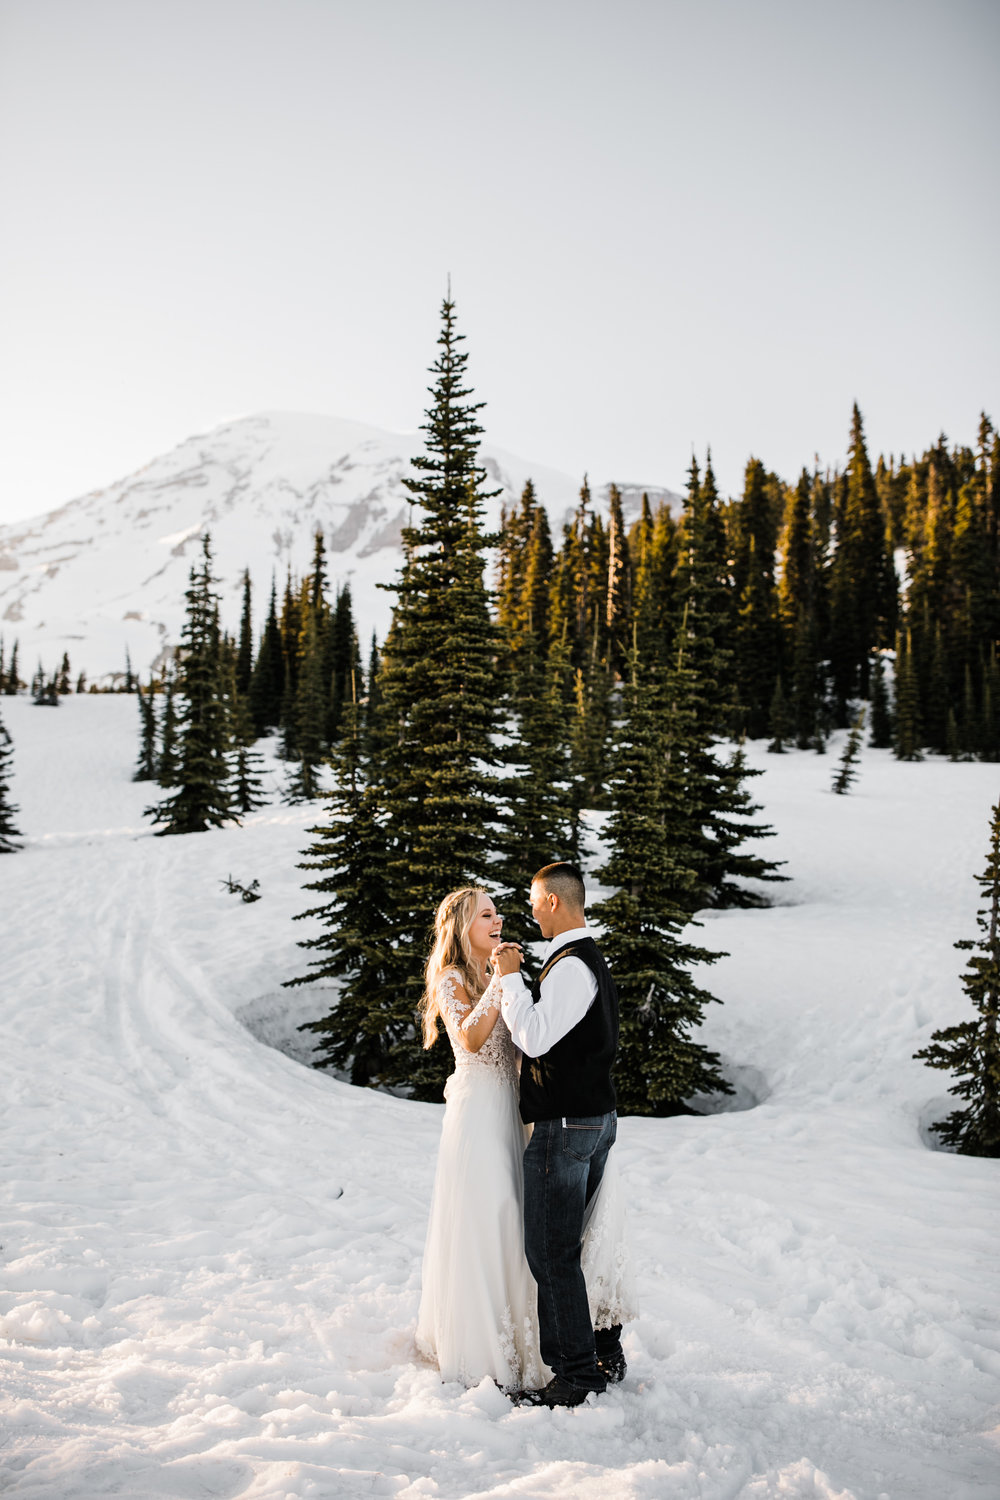 snowy wedding | long sleeve wedding dress | pendleton silver bark wedding blanket | wedding portraits in the snow in mount rainier | first dance in the mountains | national park elopement photographer